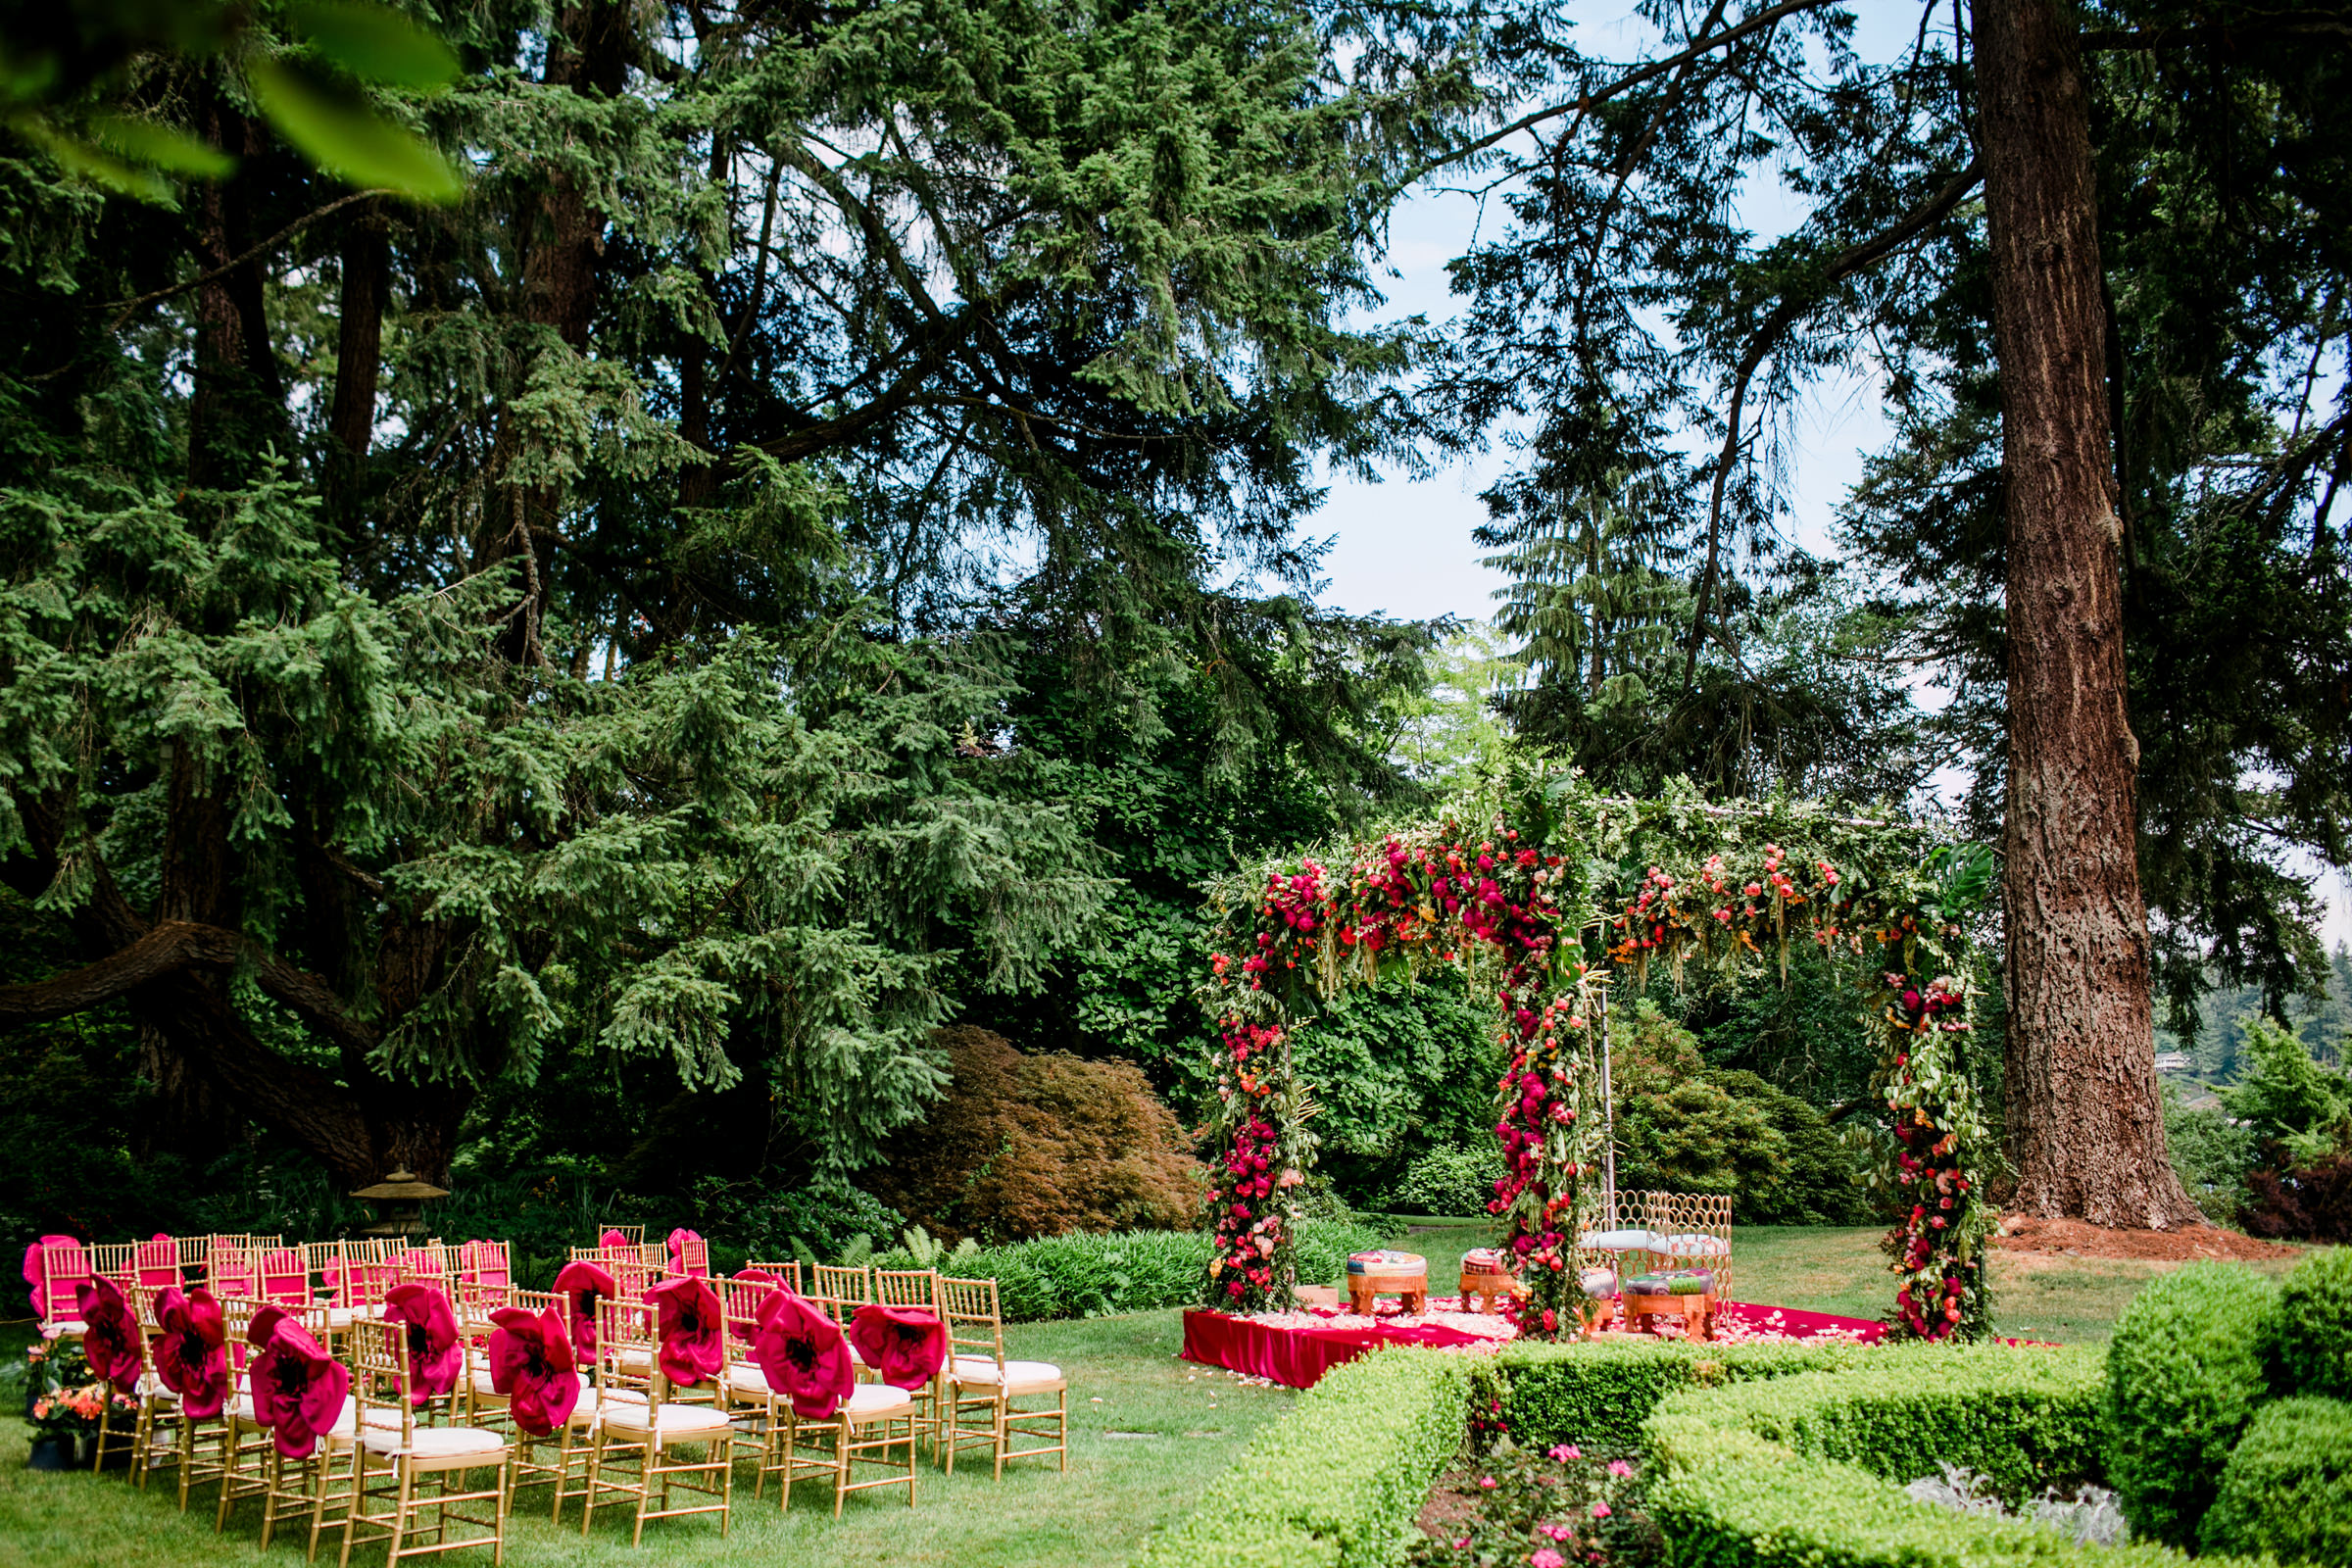 Double floral arbor in ceremony setting - photo by Into Dust Photography